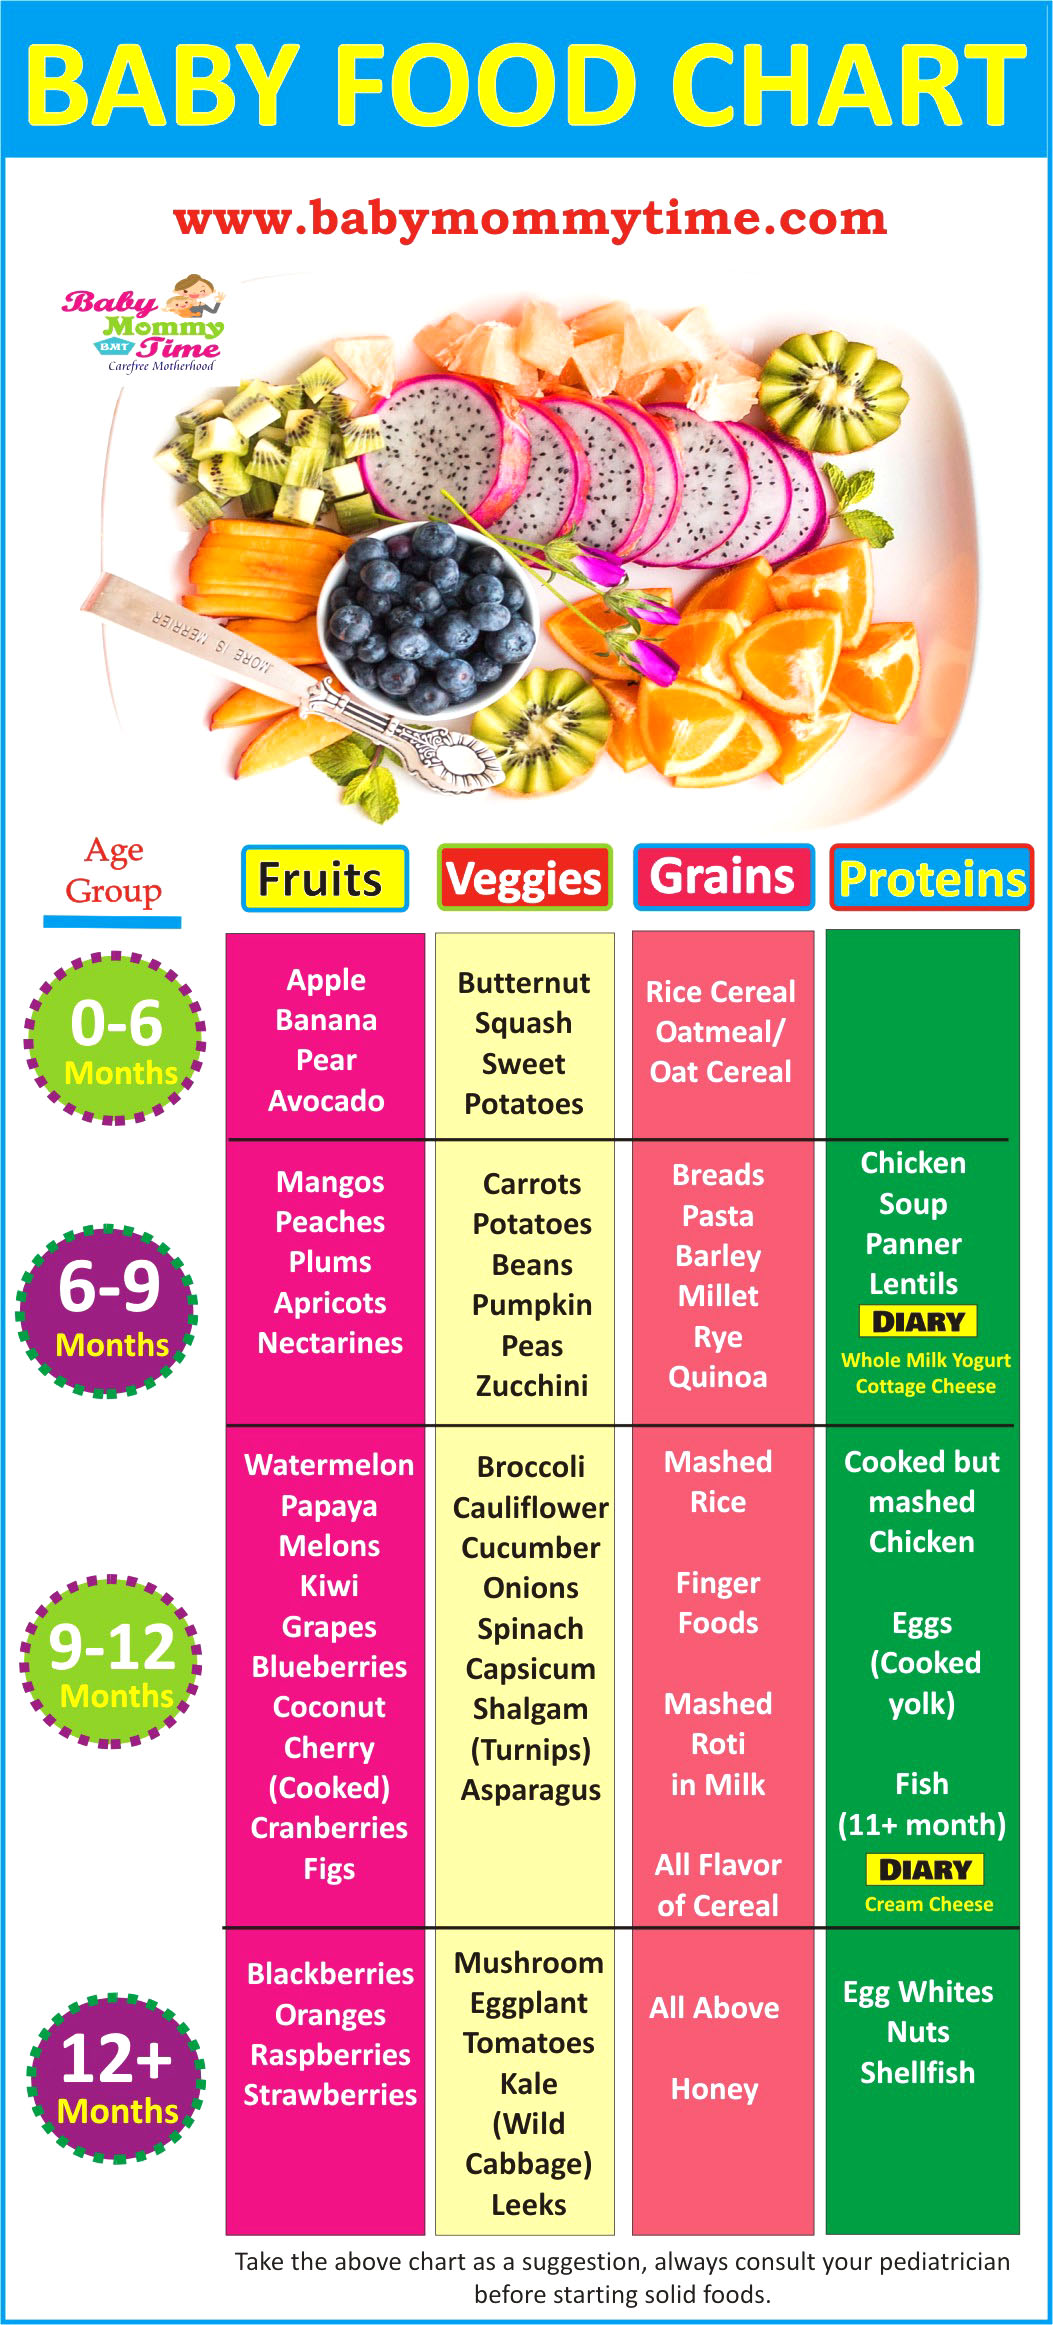 Indian Baby Food Chart 0 12 Months With Feeding Tips